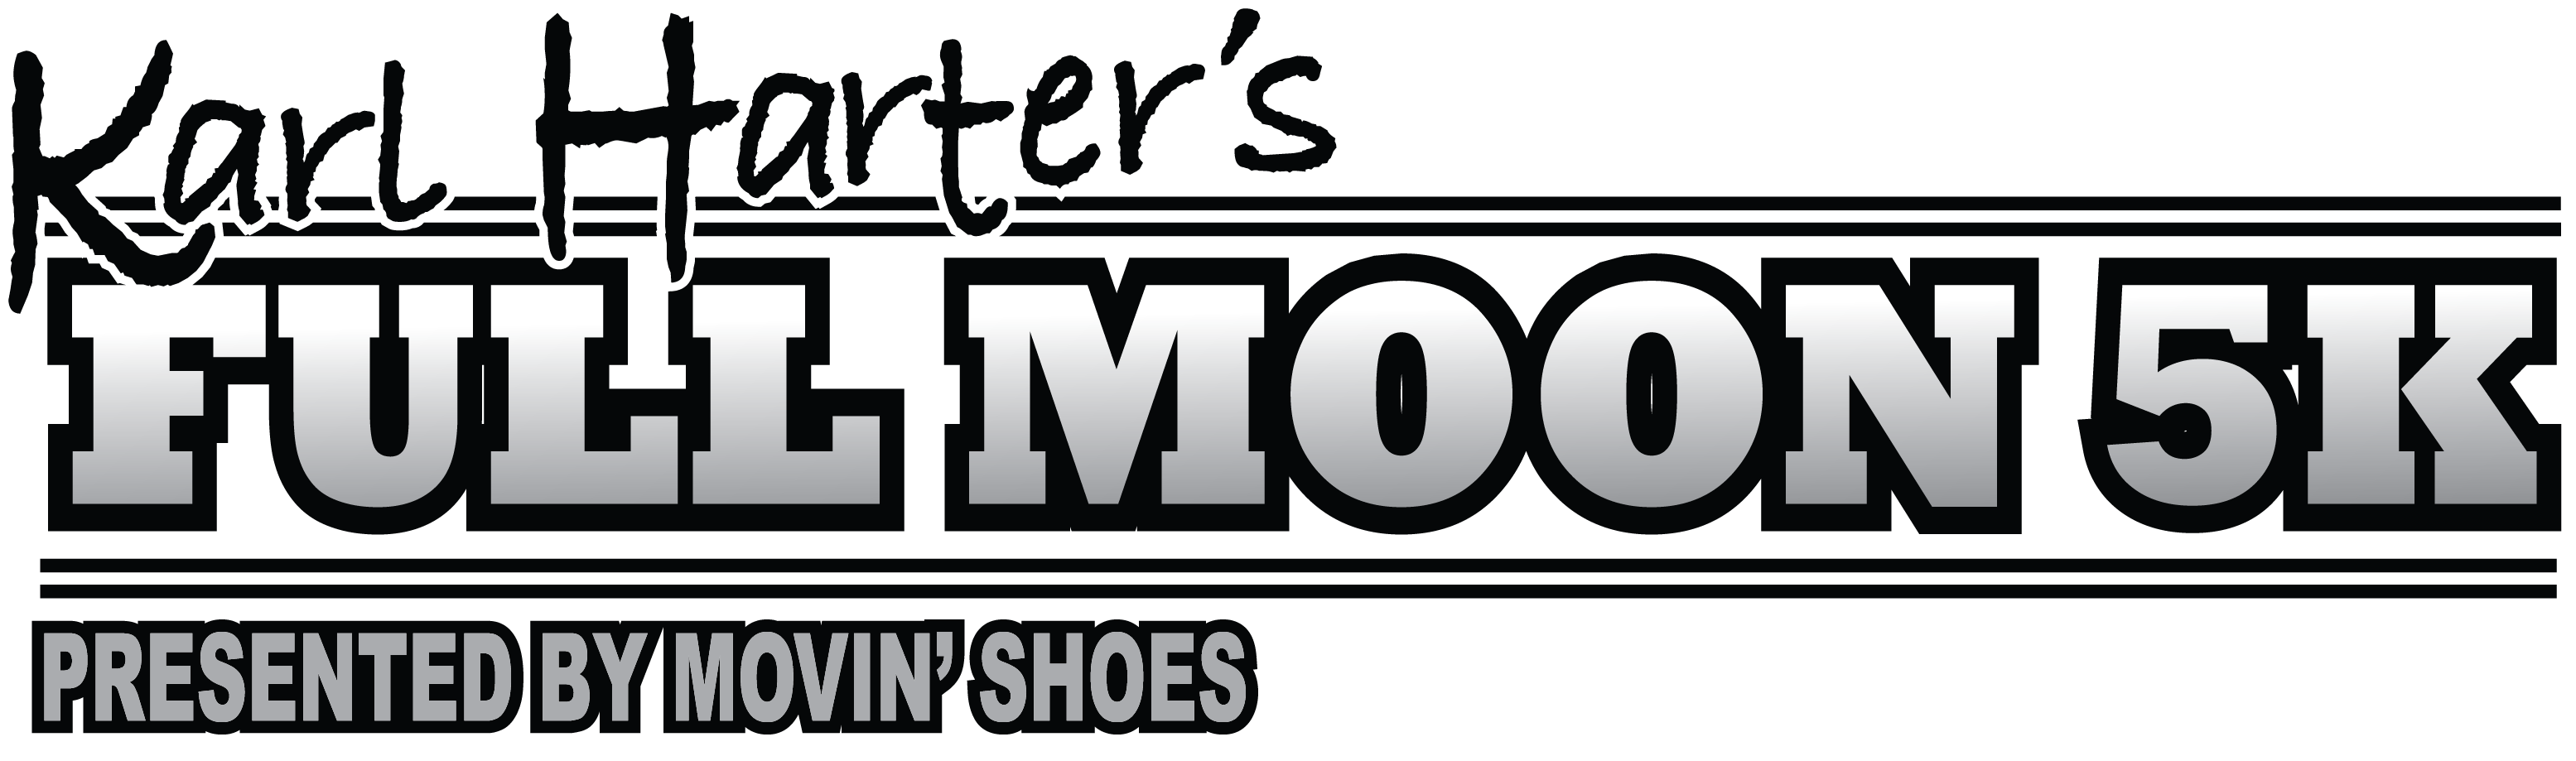 Karl Harter's Full Moon 5K presented by Movin' Shoes